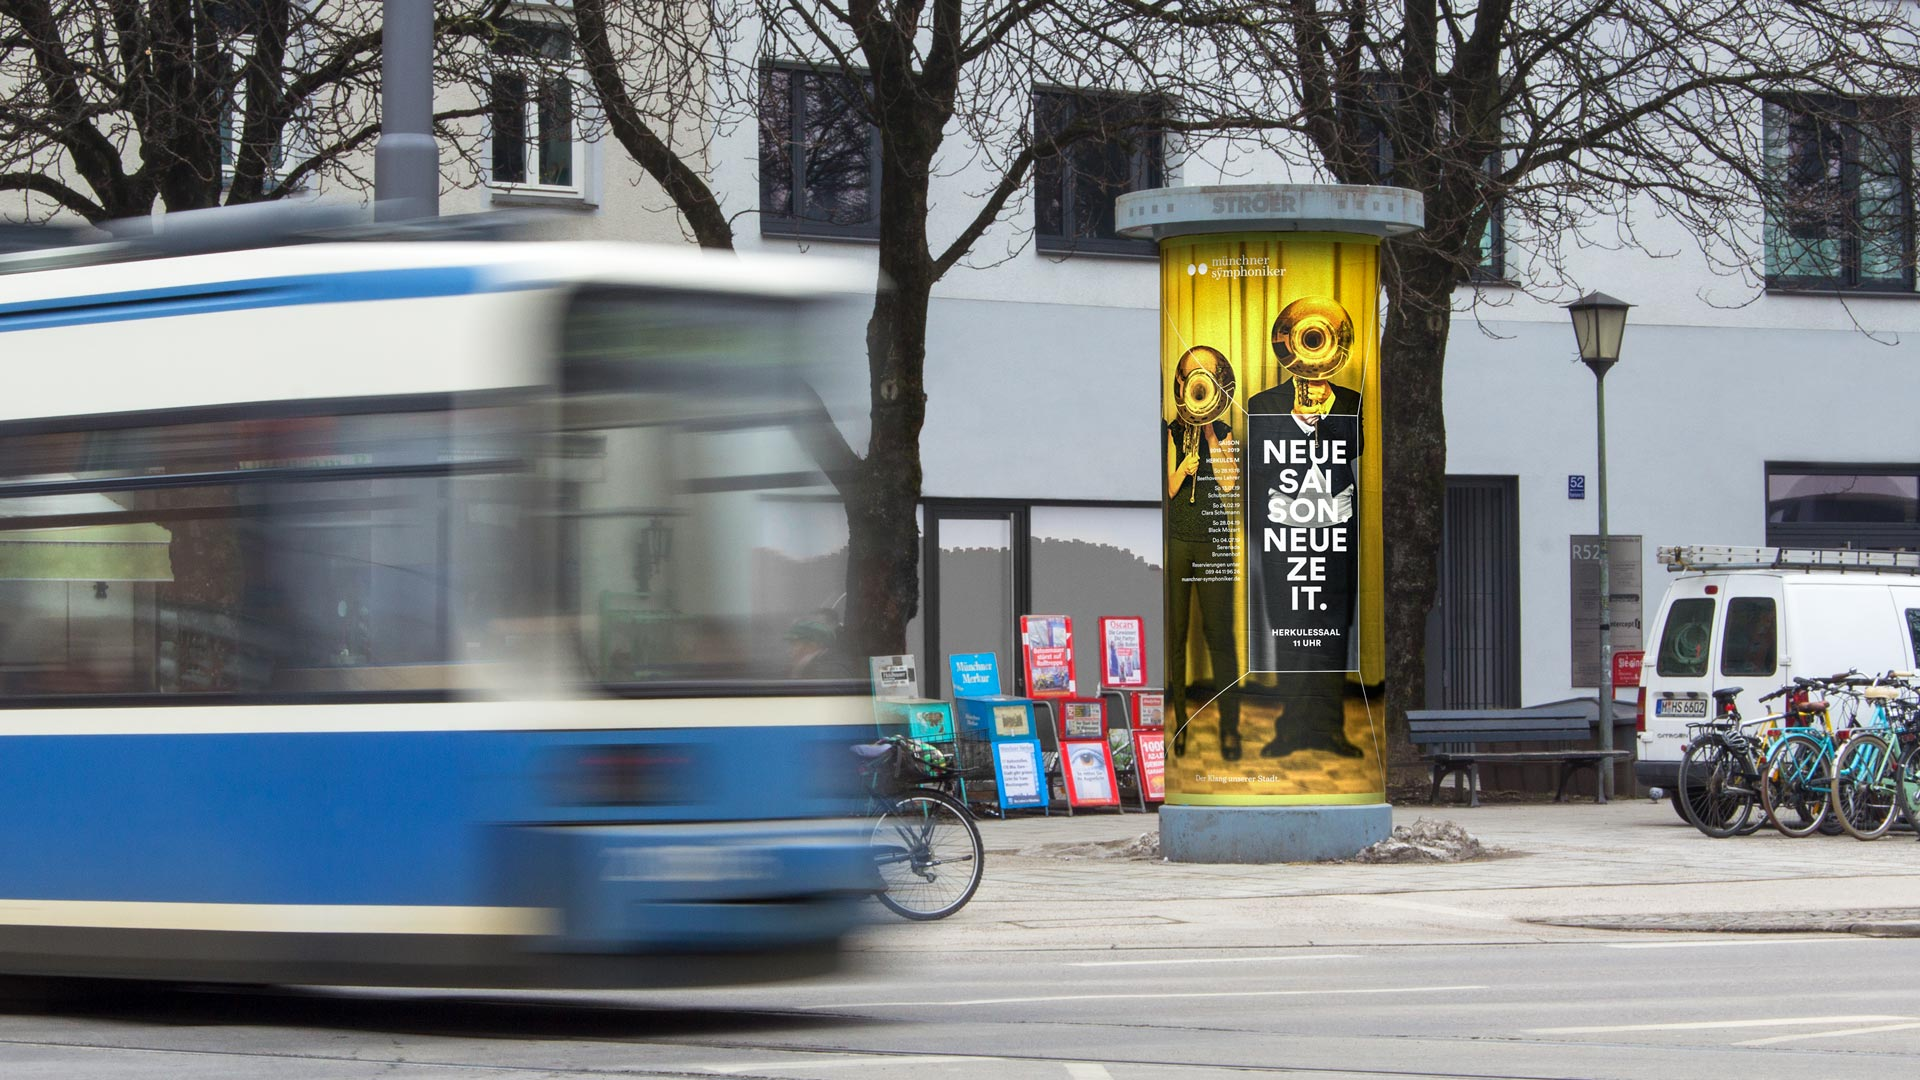 The new poster of the Munich Symphony Orchestra on an advertising pillar at Rosenheimer Straße in Munich.